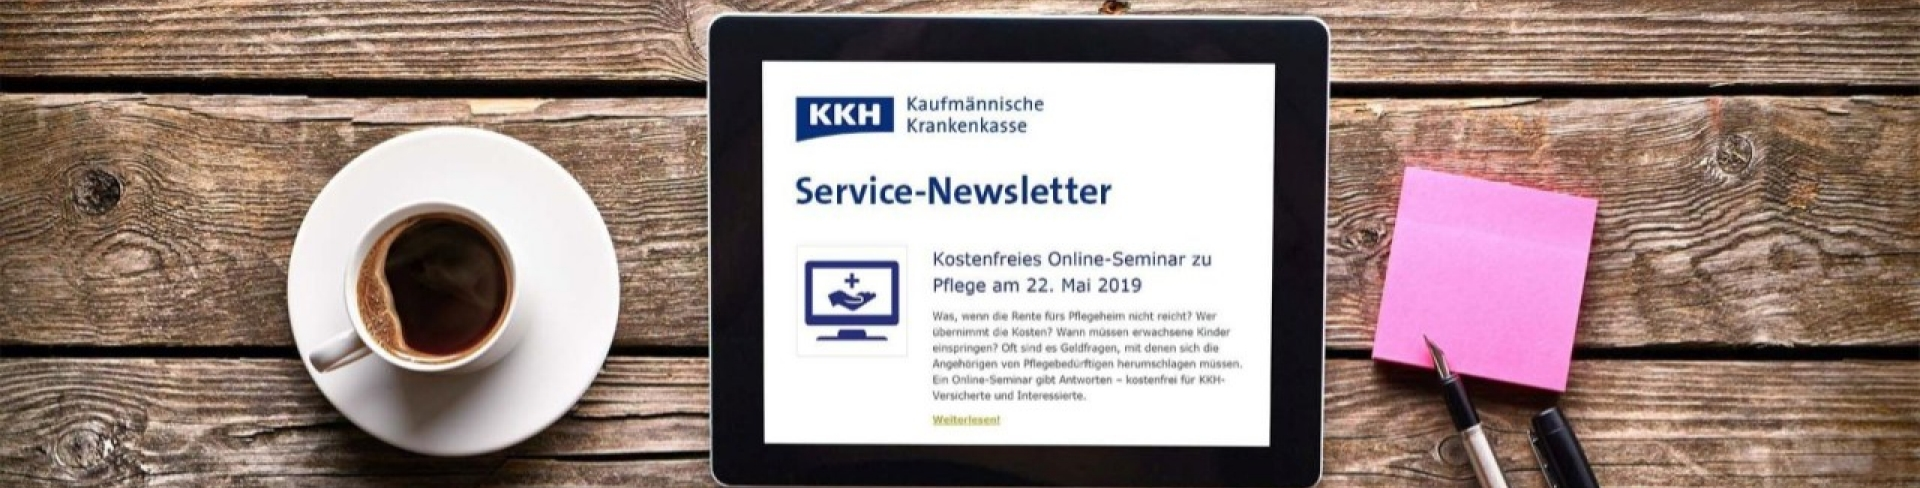 KKH Service-Newsletter